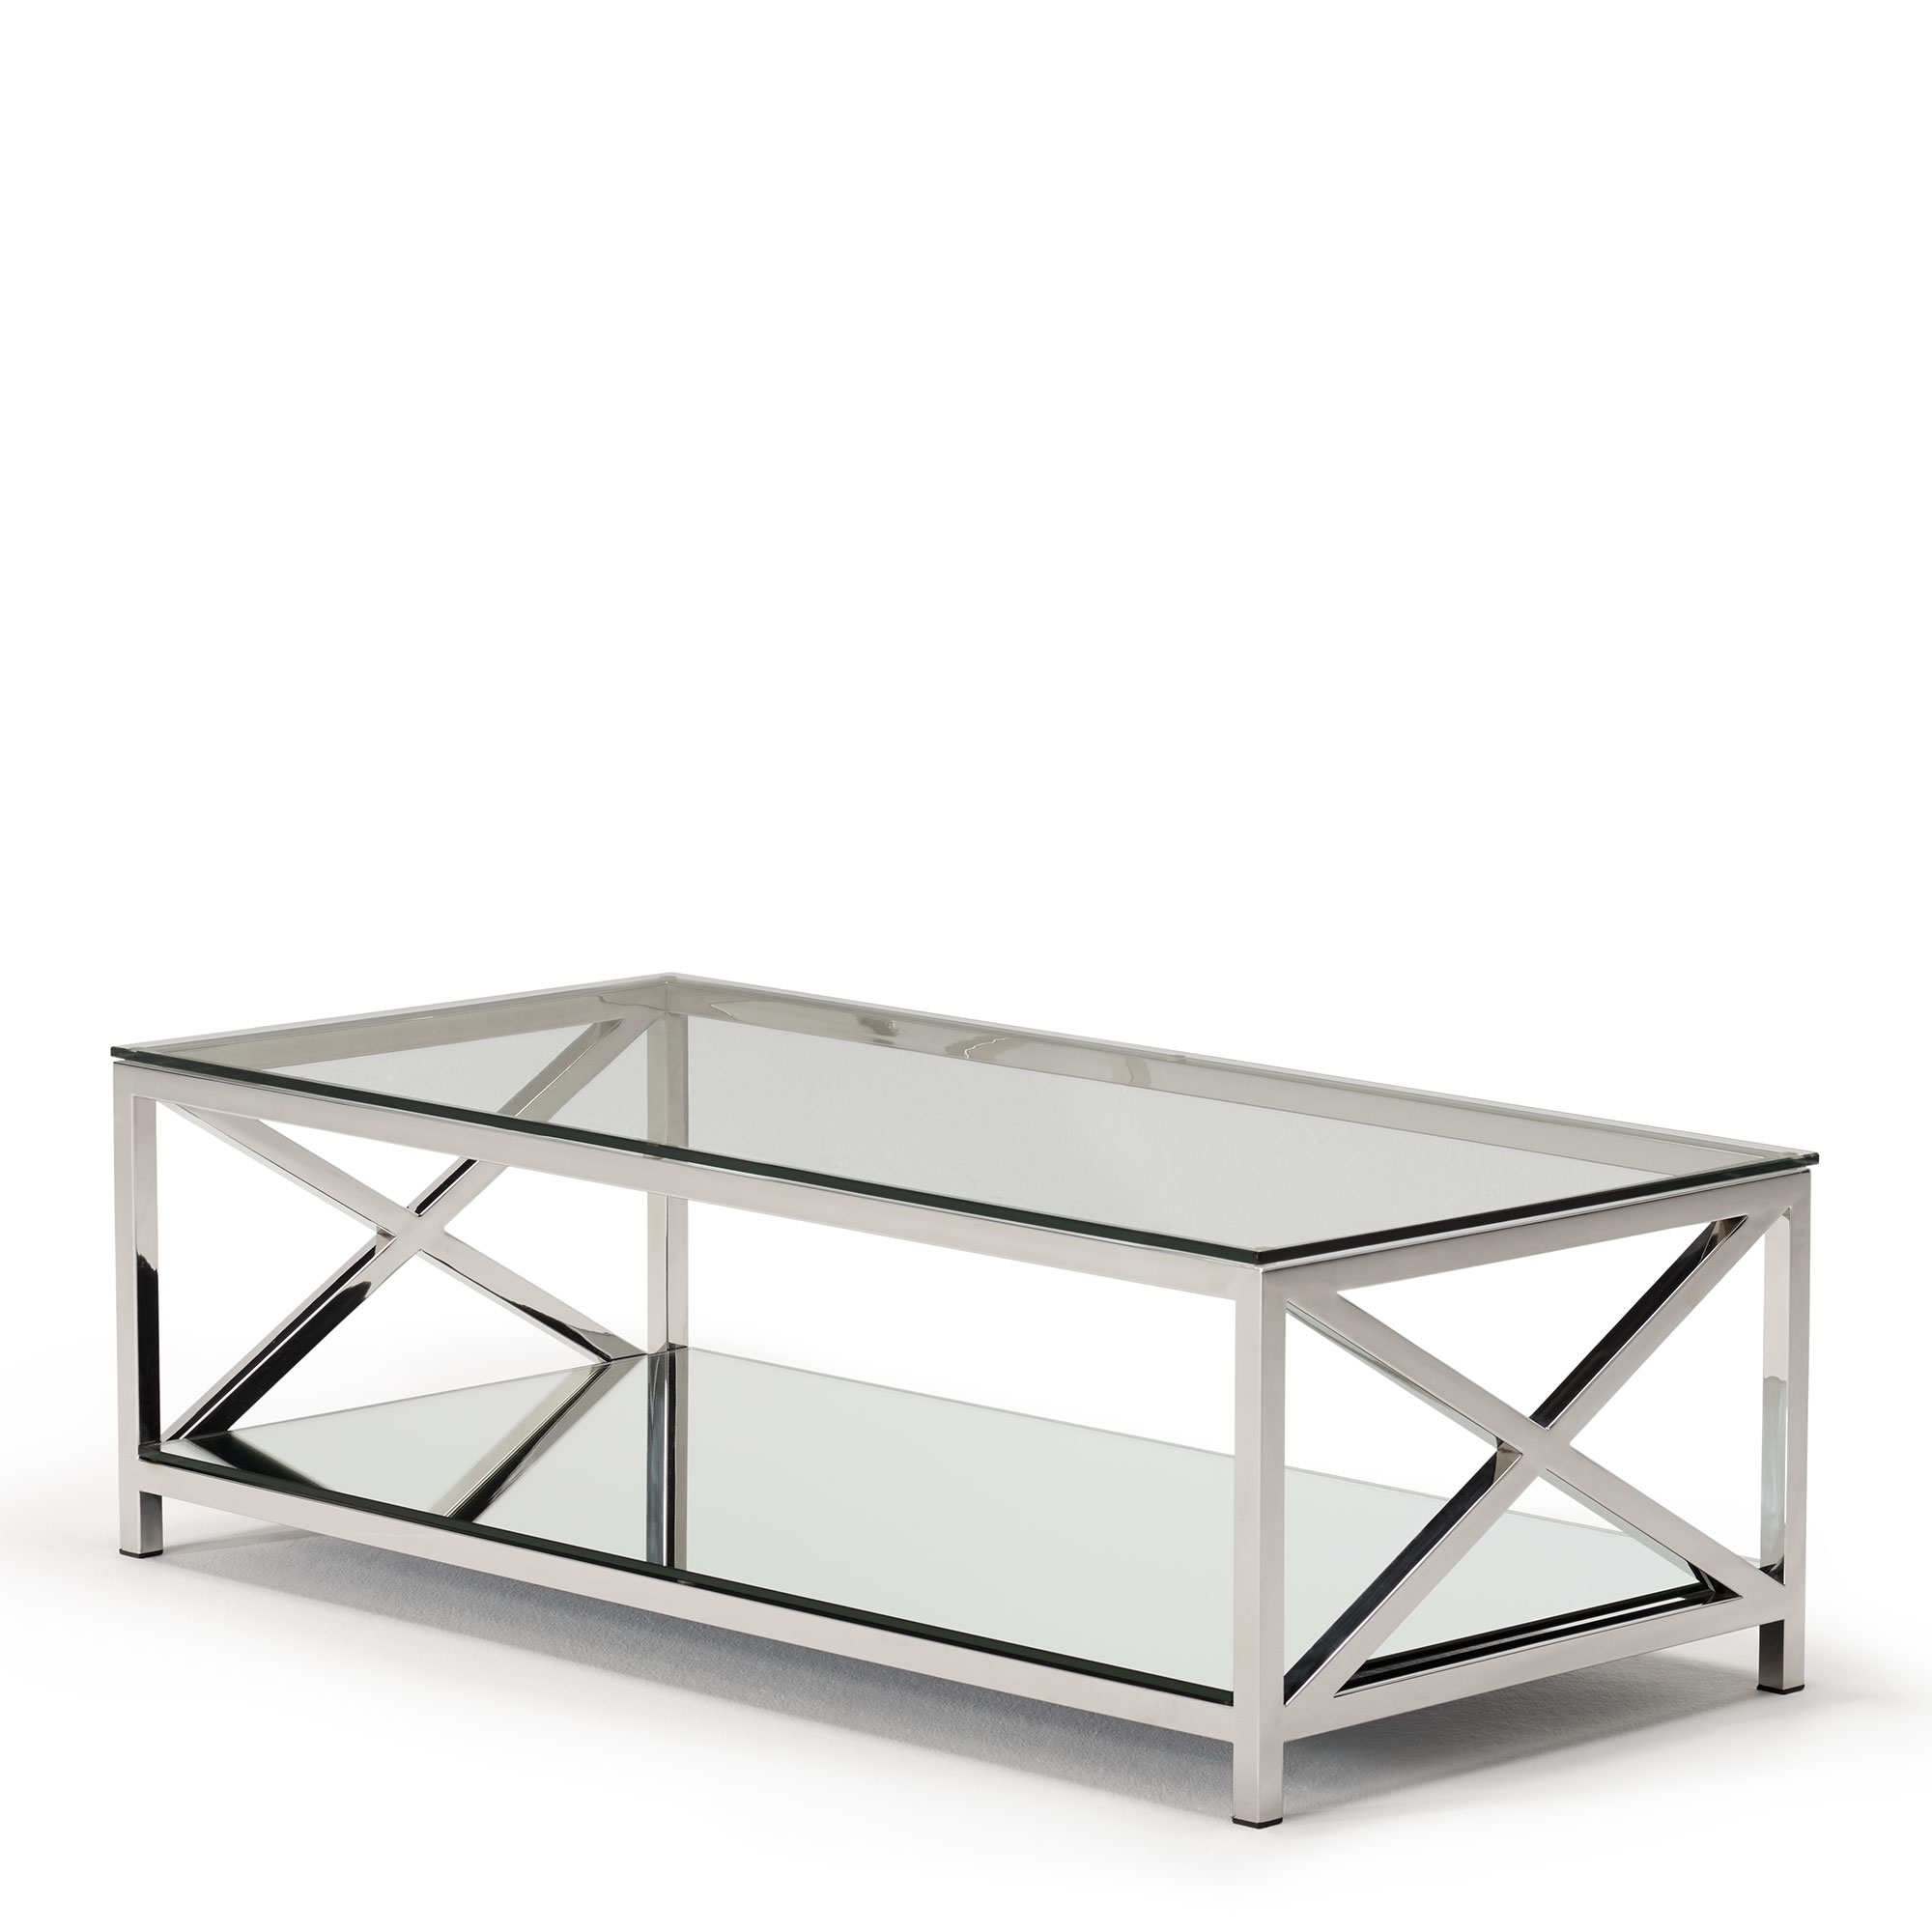 Lucia Coffee Table With Glass Top Stainless Steel Frame Occasional Tables Fishpools